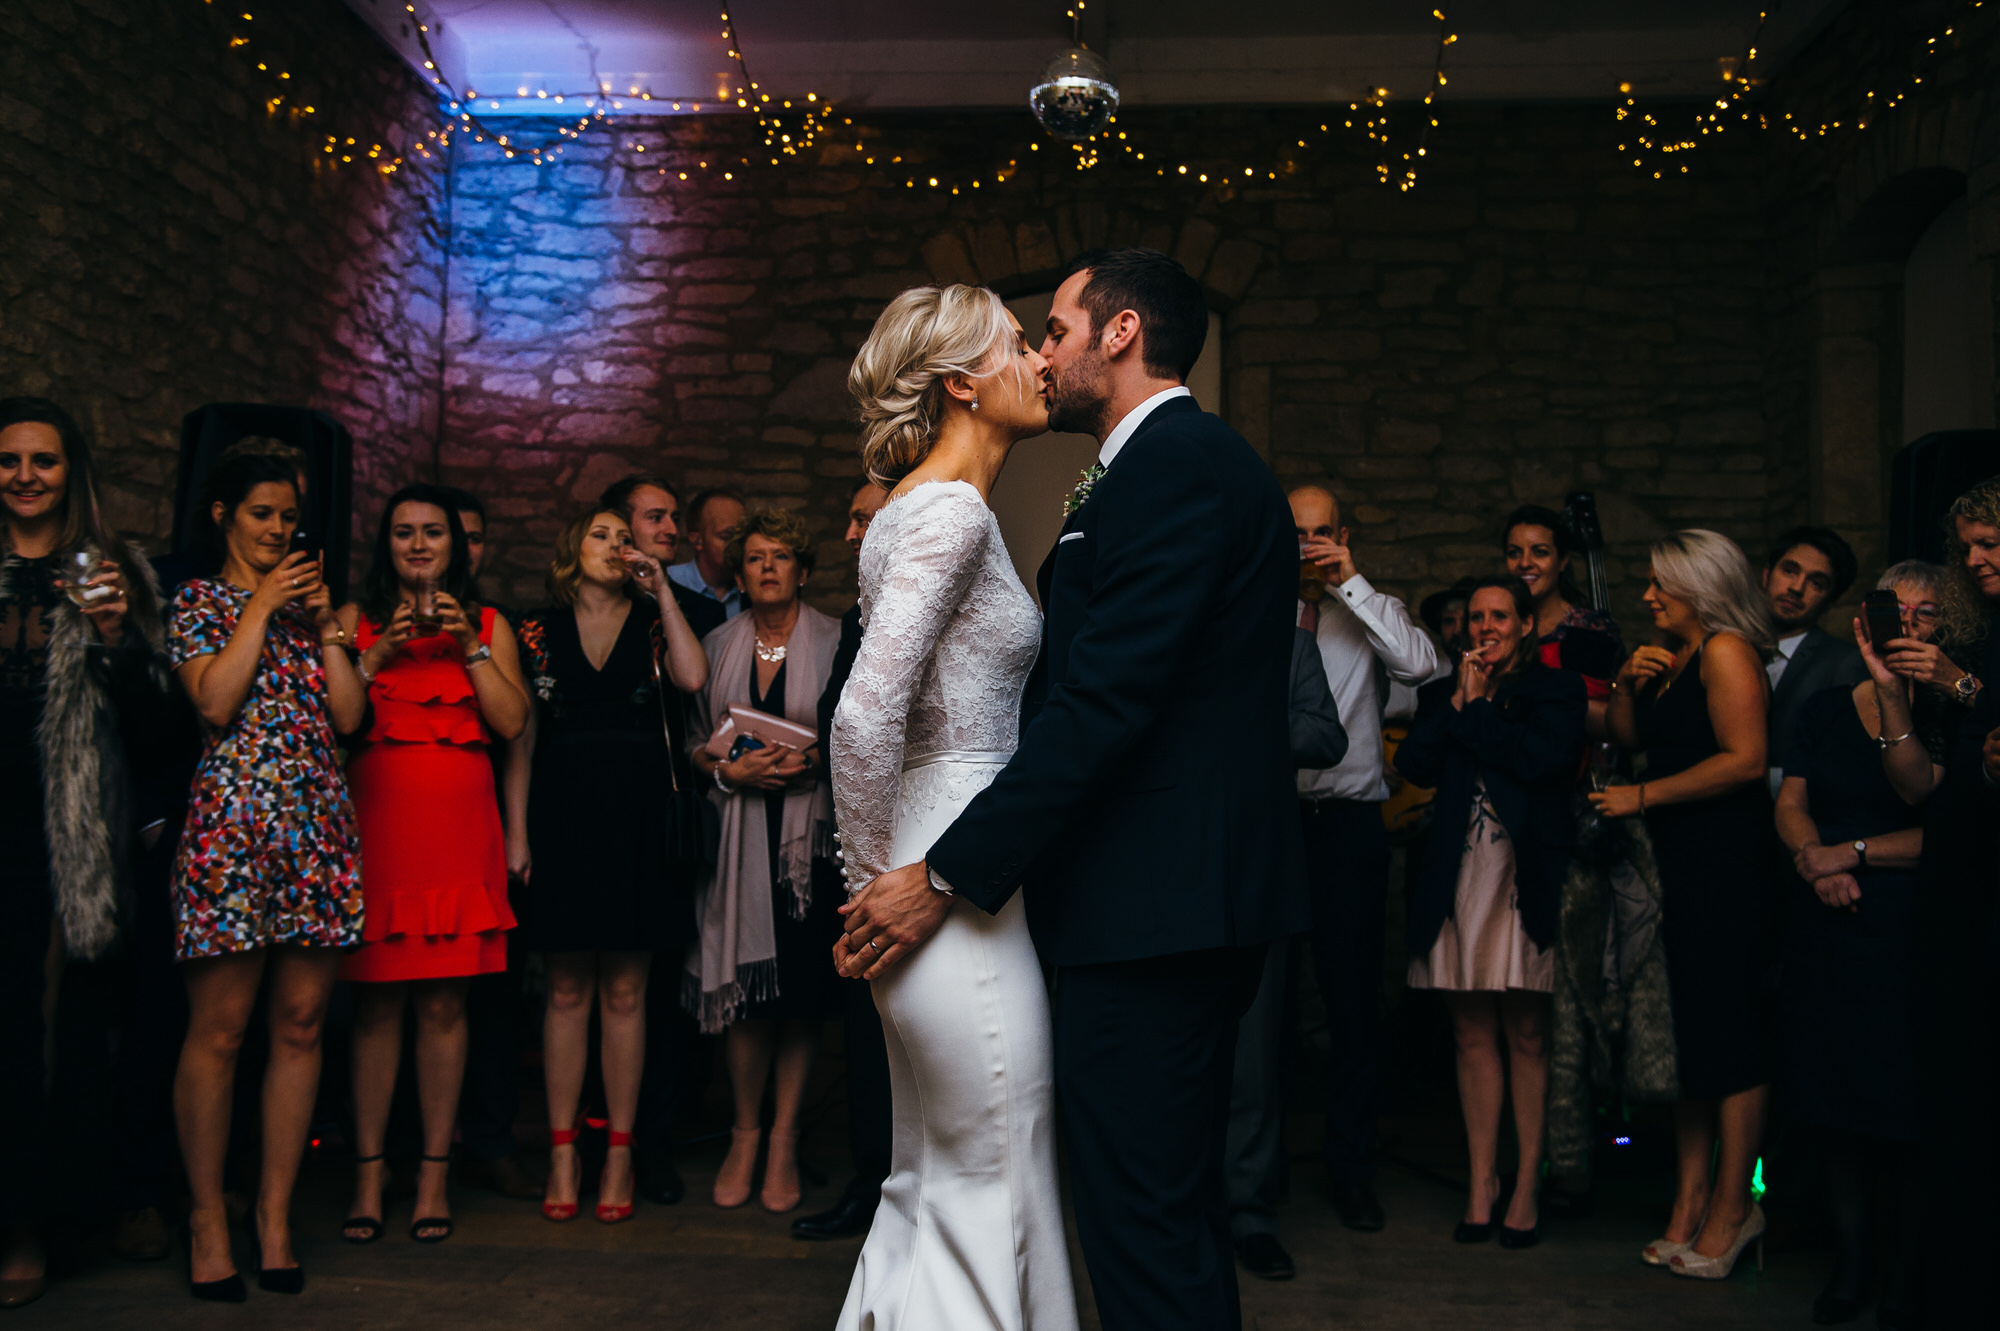 First dance at Brympton house